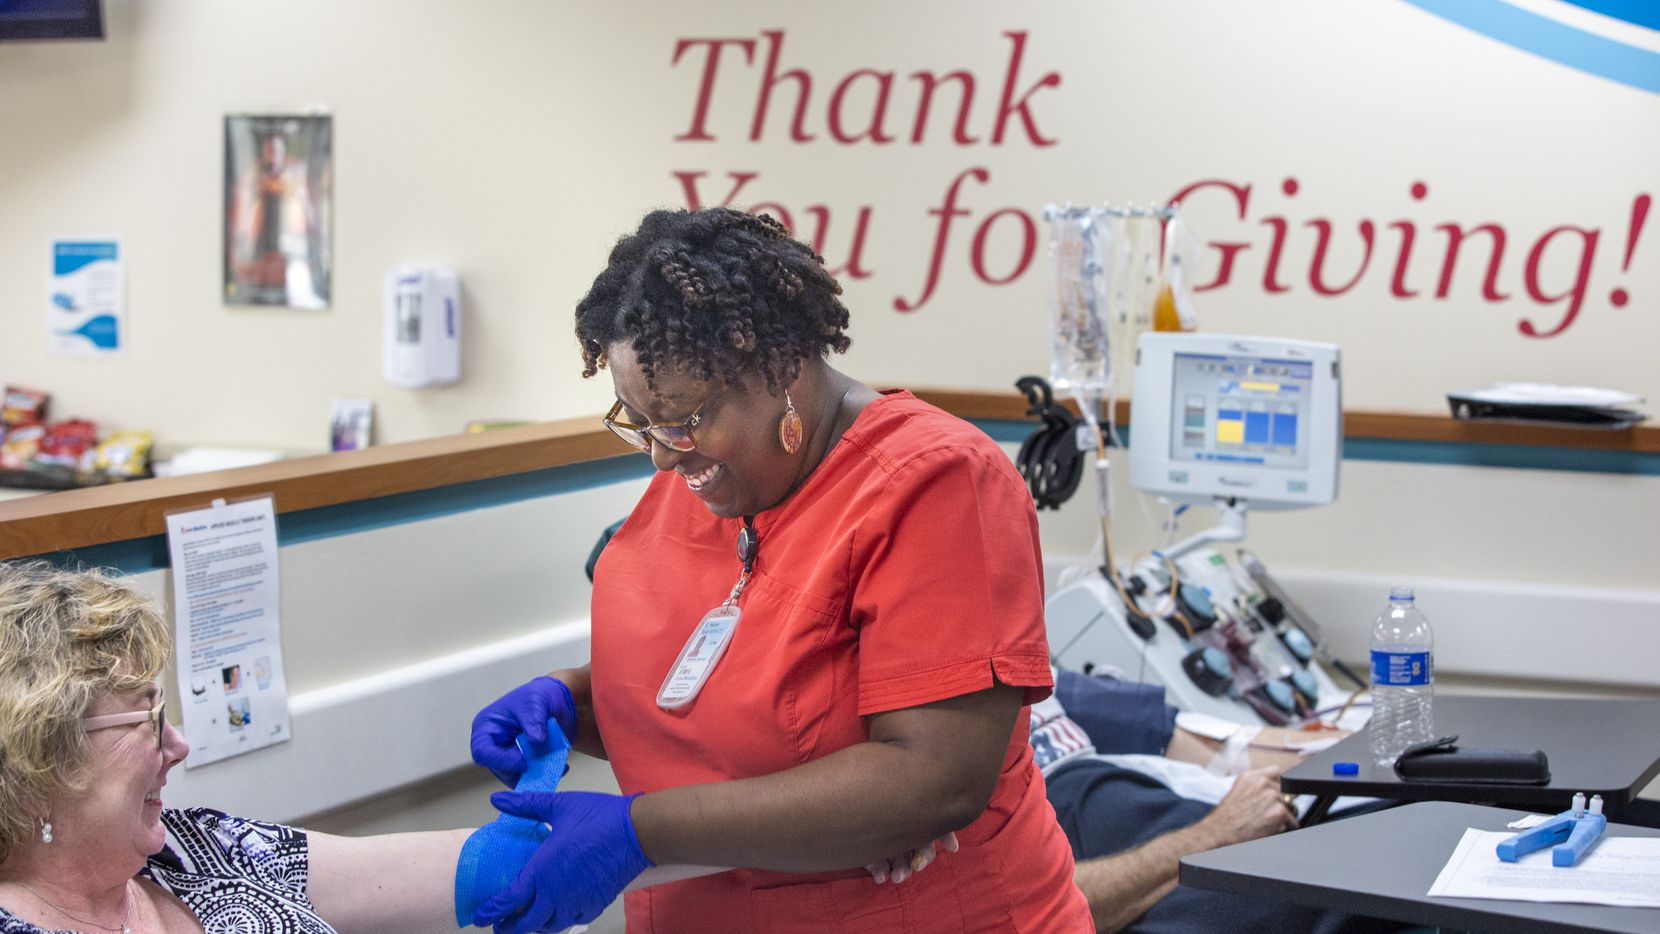 Donor Center supervisor Nicole Taylor (center) laughs with longtime blood donor Diana Tipton as she prepares to draw blood at the Carter BloodCare Preston Valley Donor Center in Dallas on Wednesday, March 18, 2020.